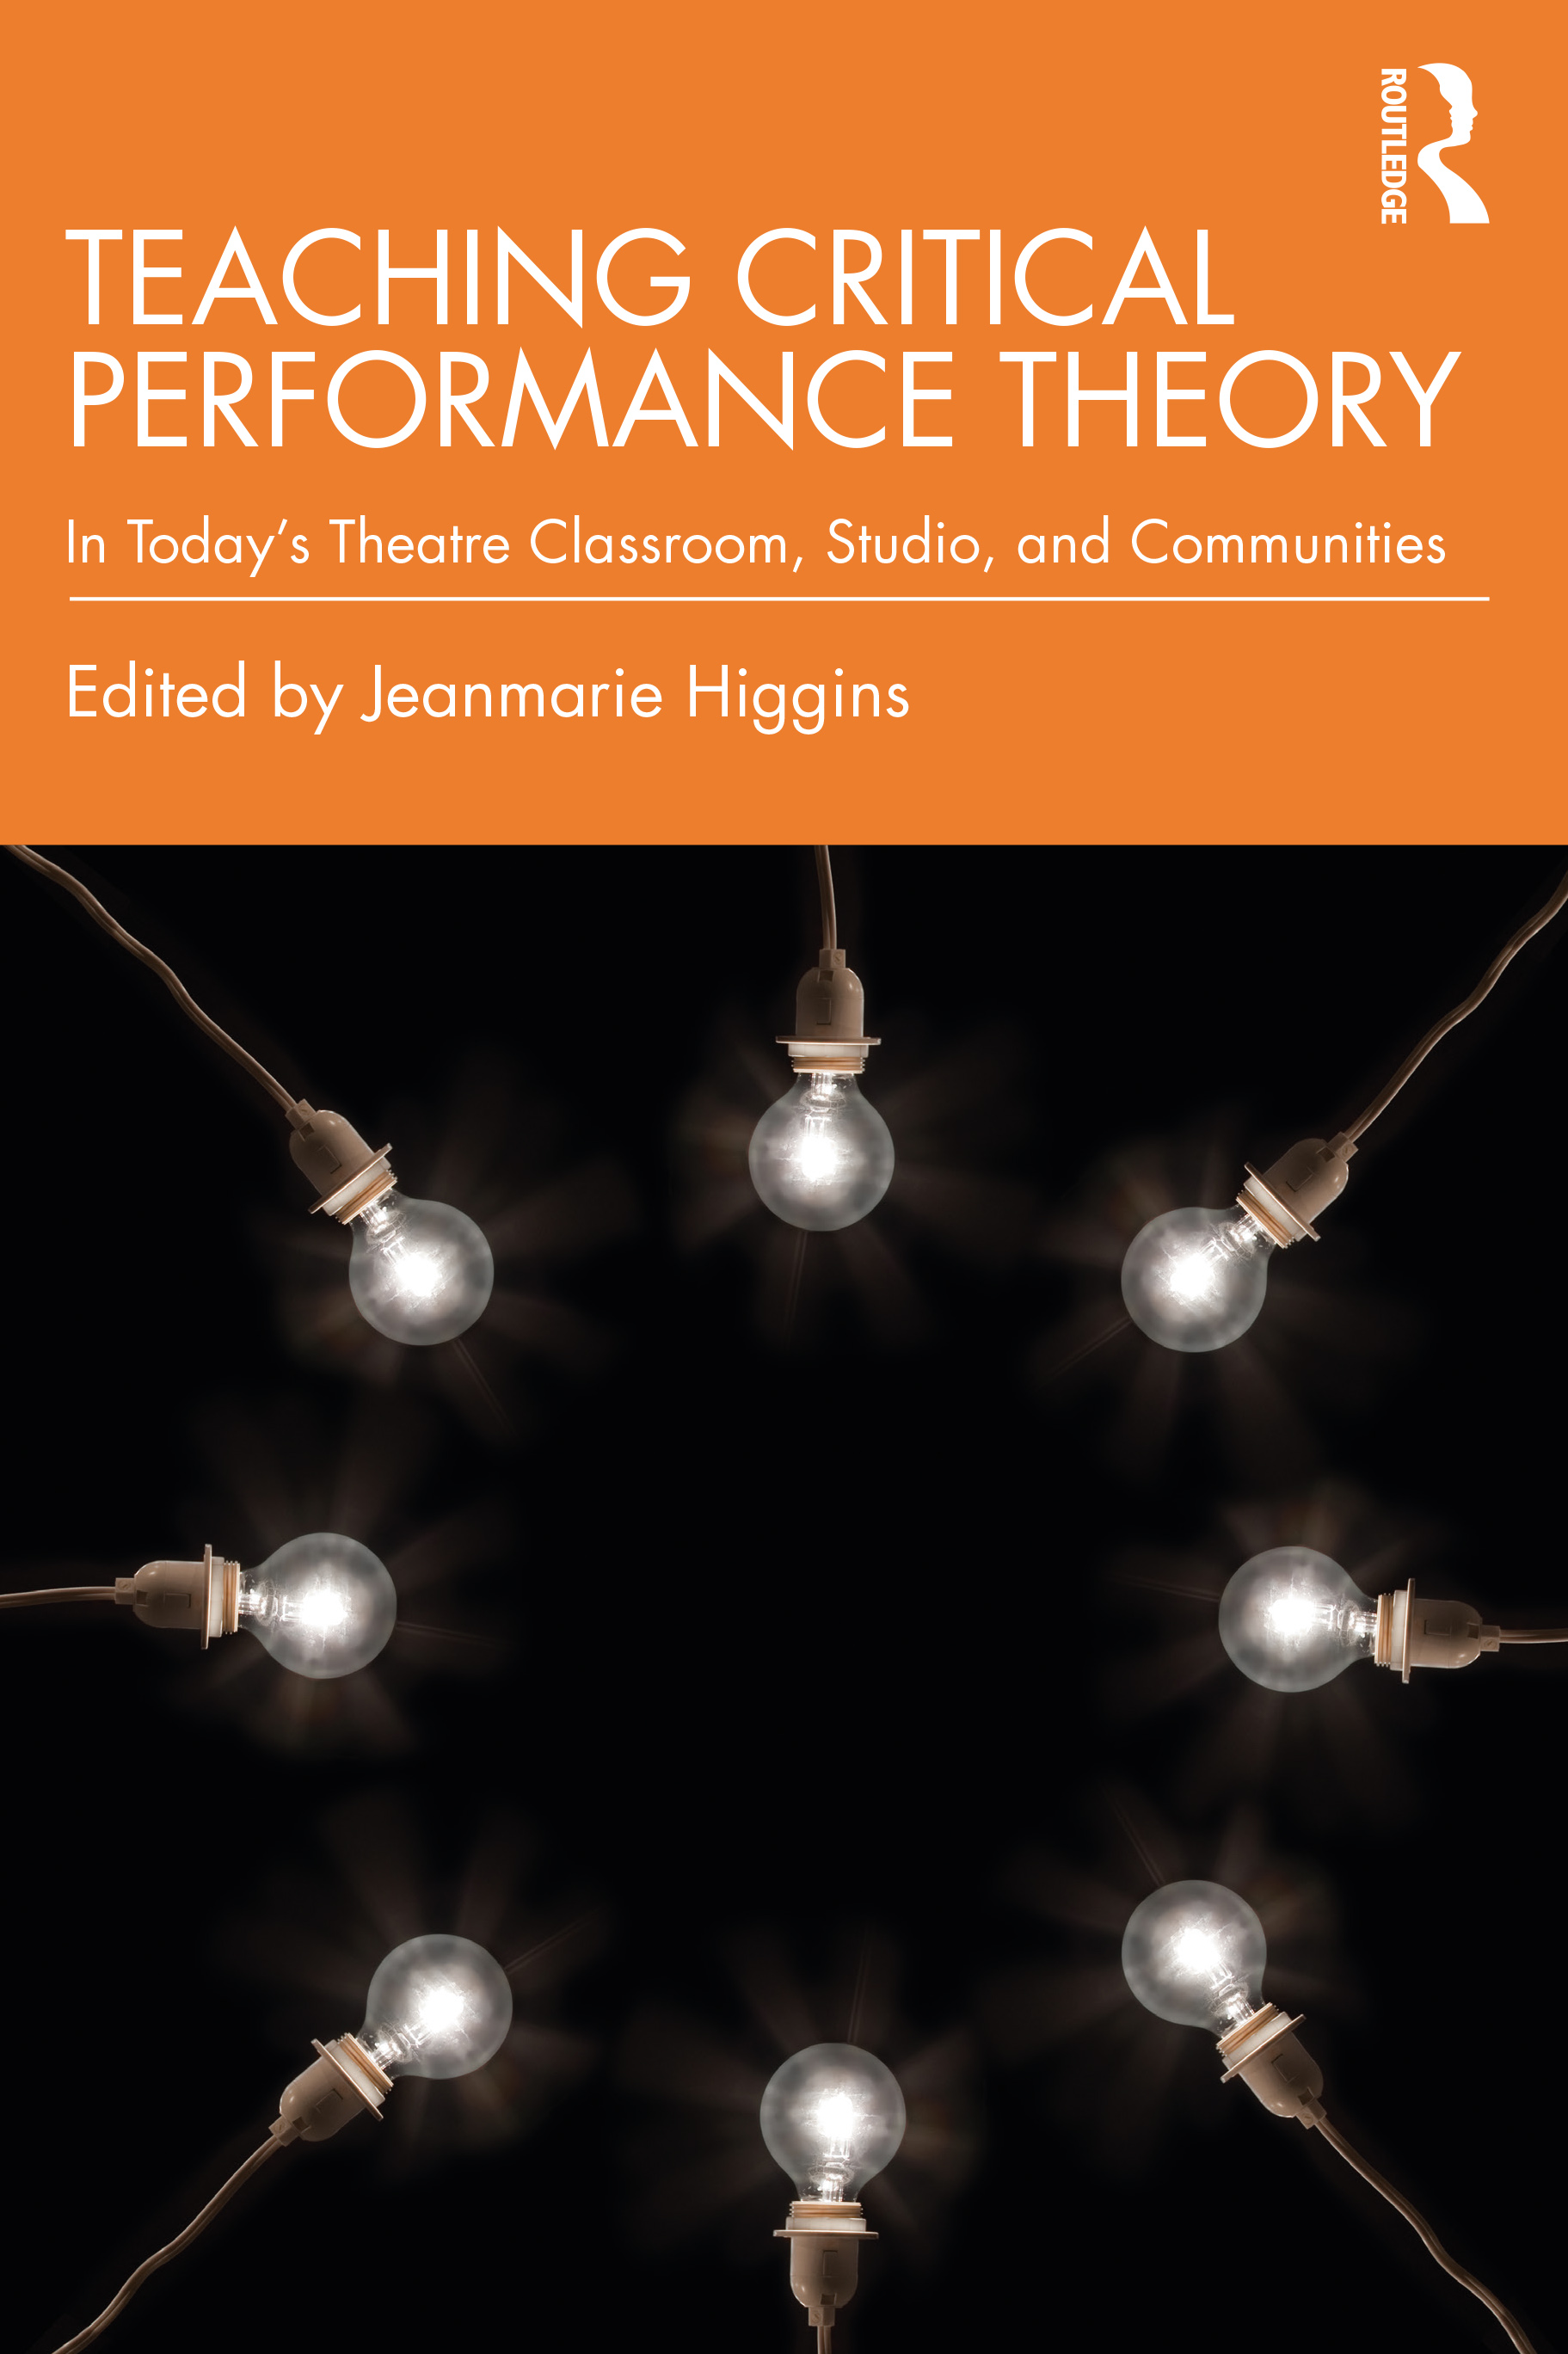 Teaching Critical Performance Theory: In Today's Theatre Classroom, Studio, and Communities book cover